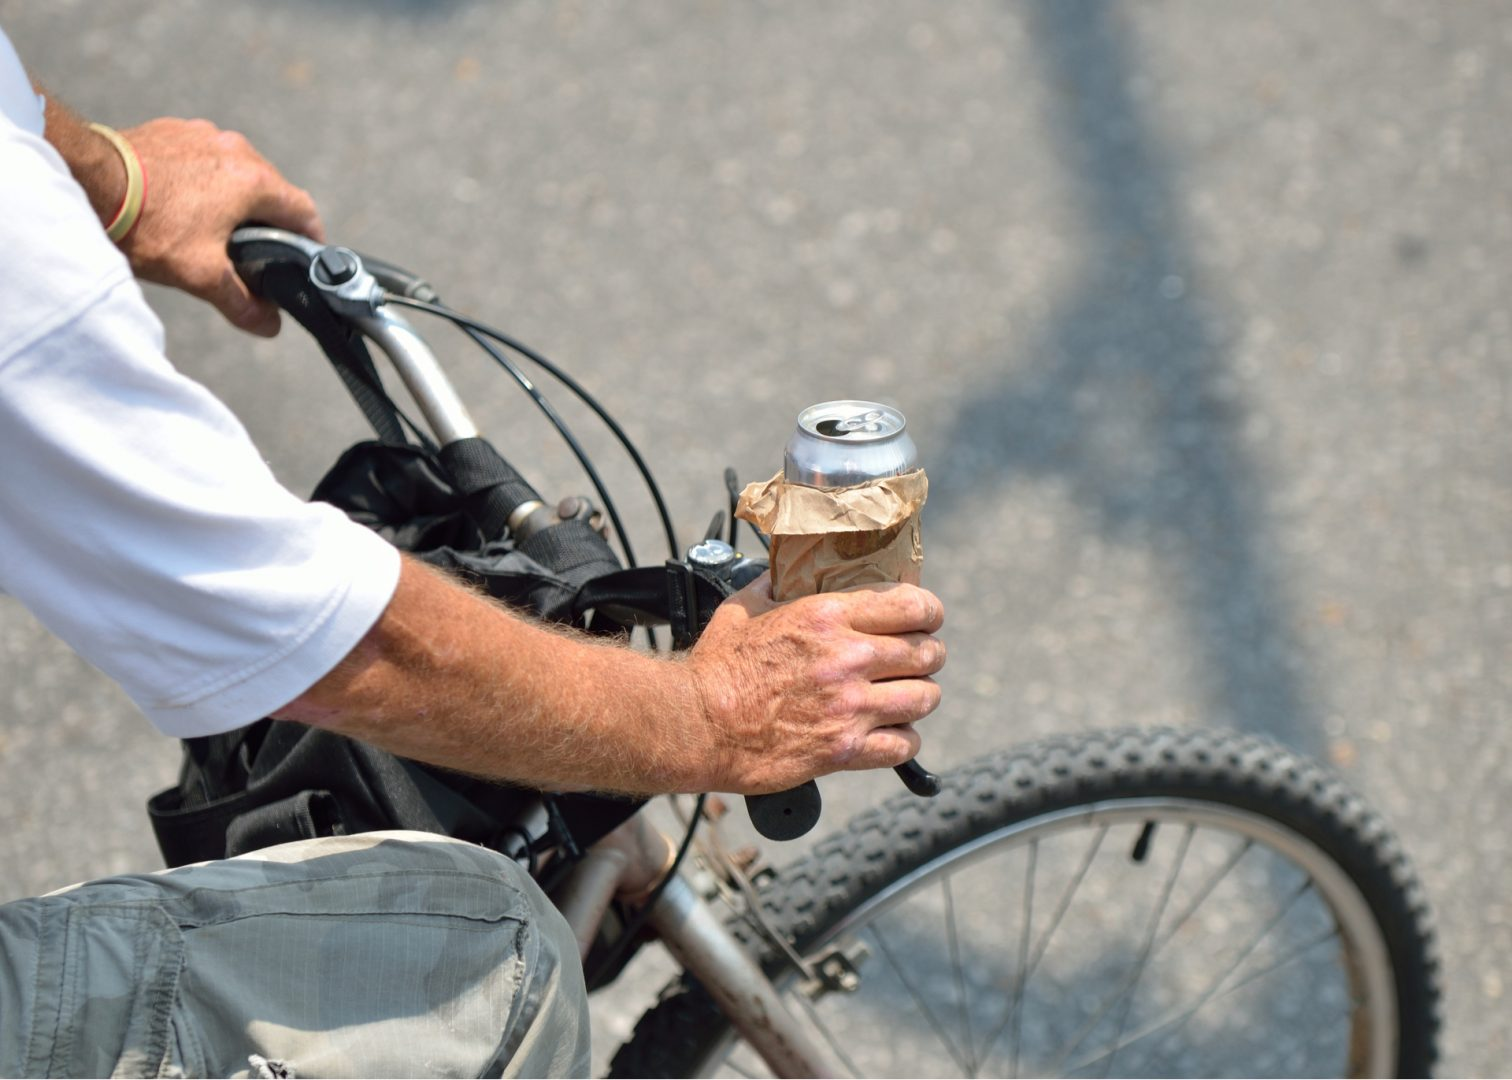 Man Drinking While Riding Bicycle In Dallas Texas Could Be Arrested